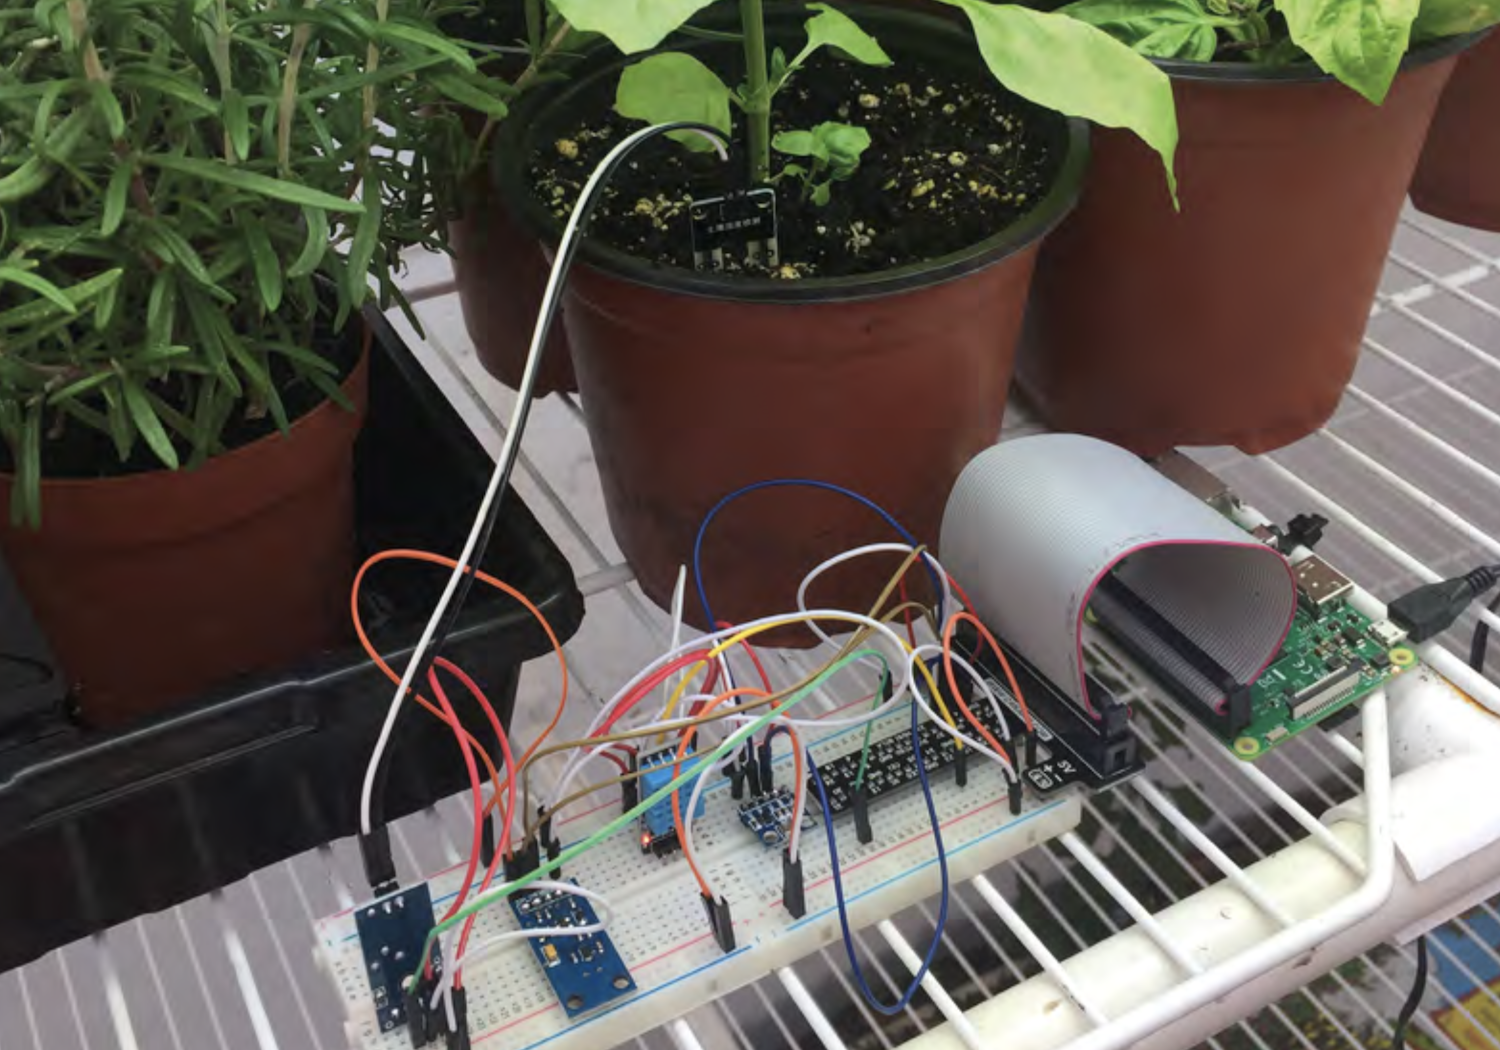 Using data to help a school garden - Raspberry Pi